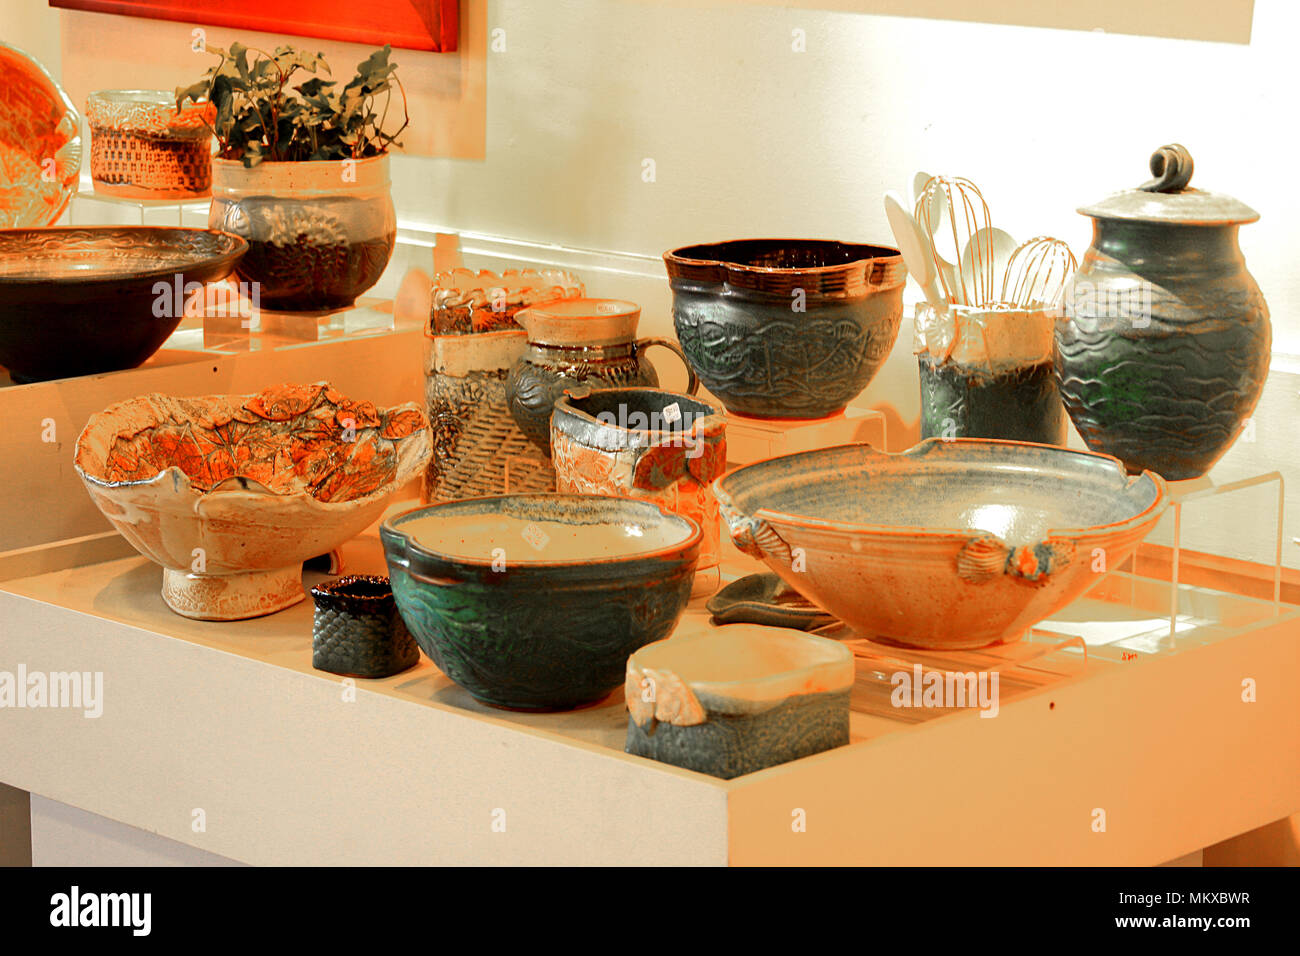 Pottery display in art gallery - Stock Image